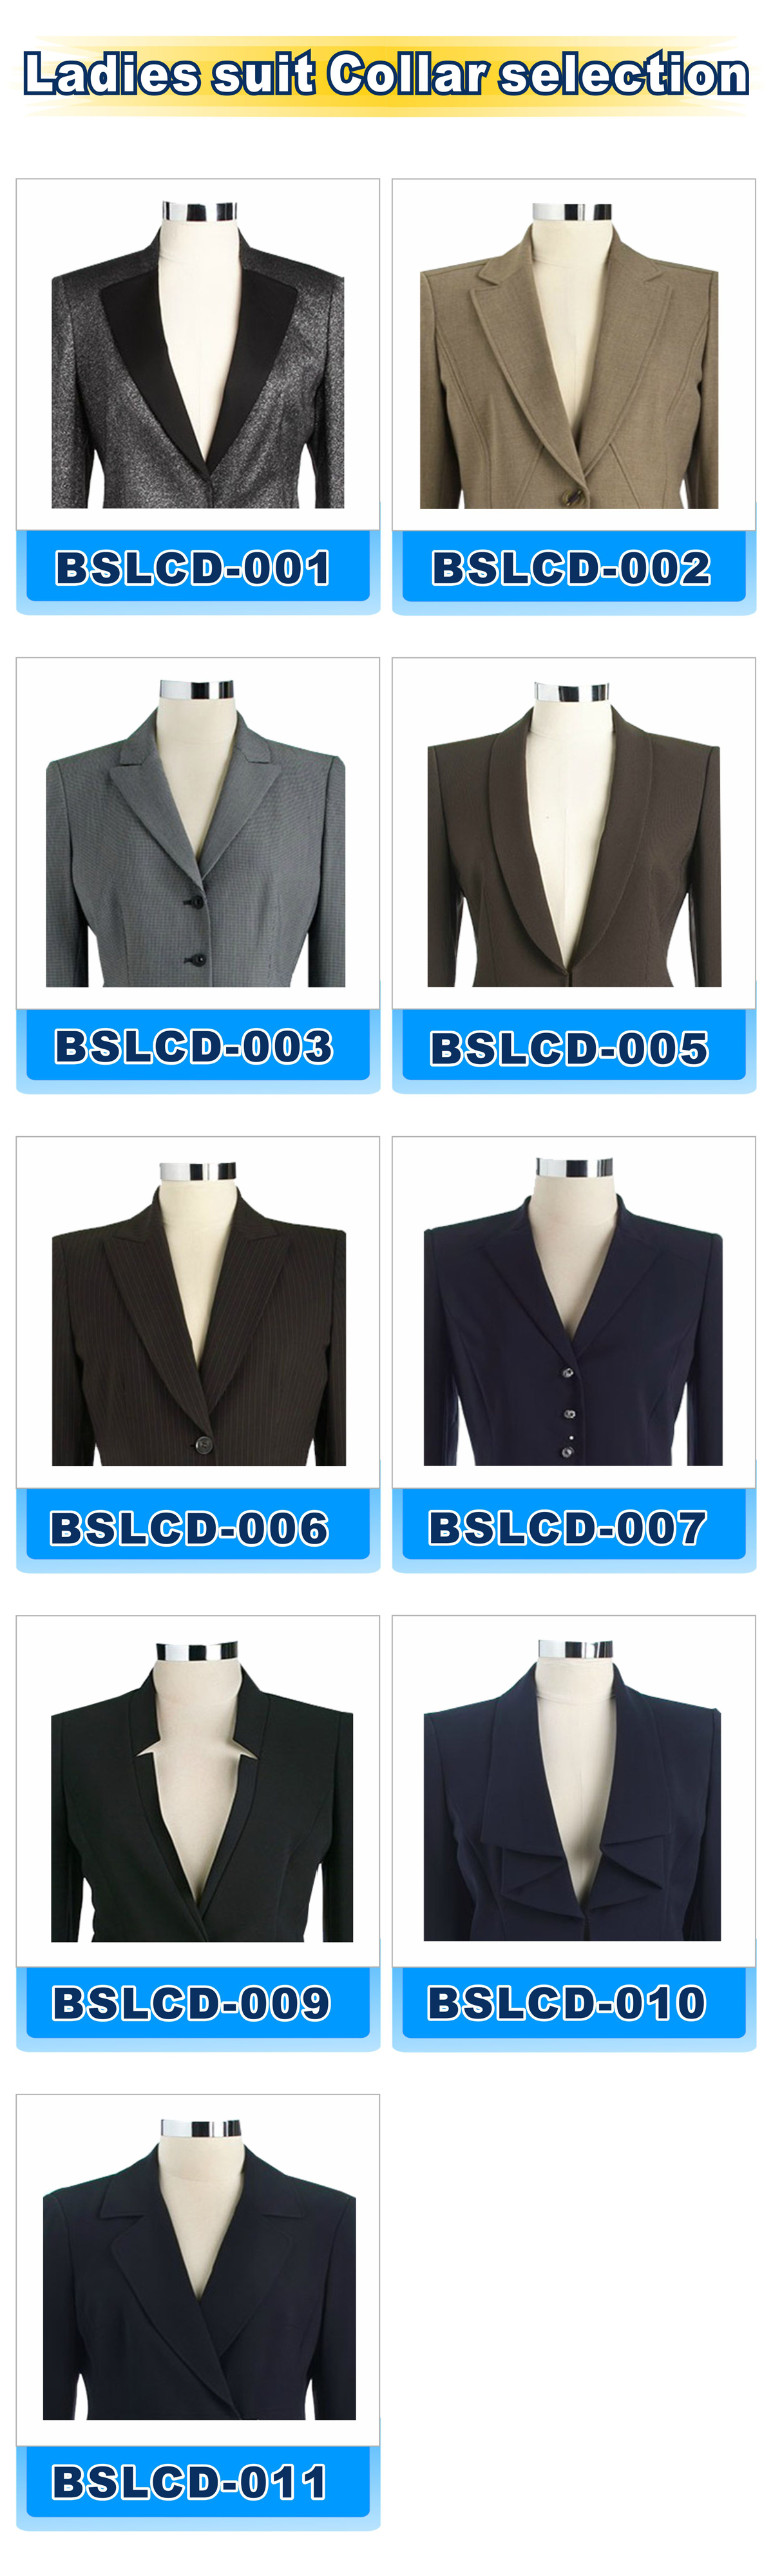 ladies suit collar selection 2